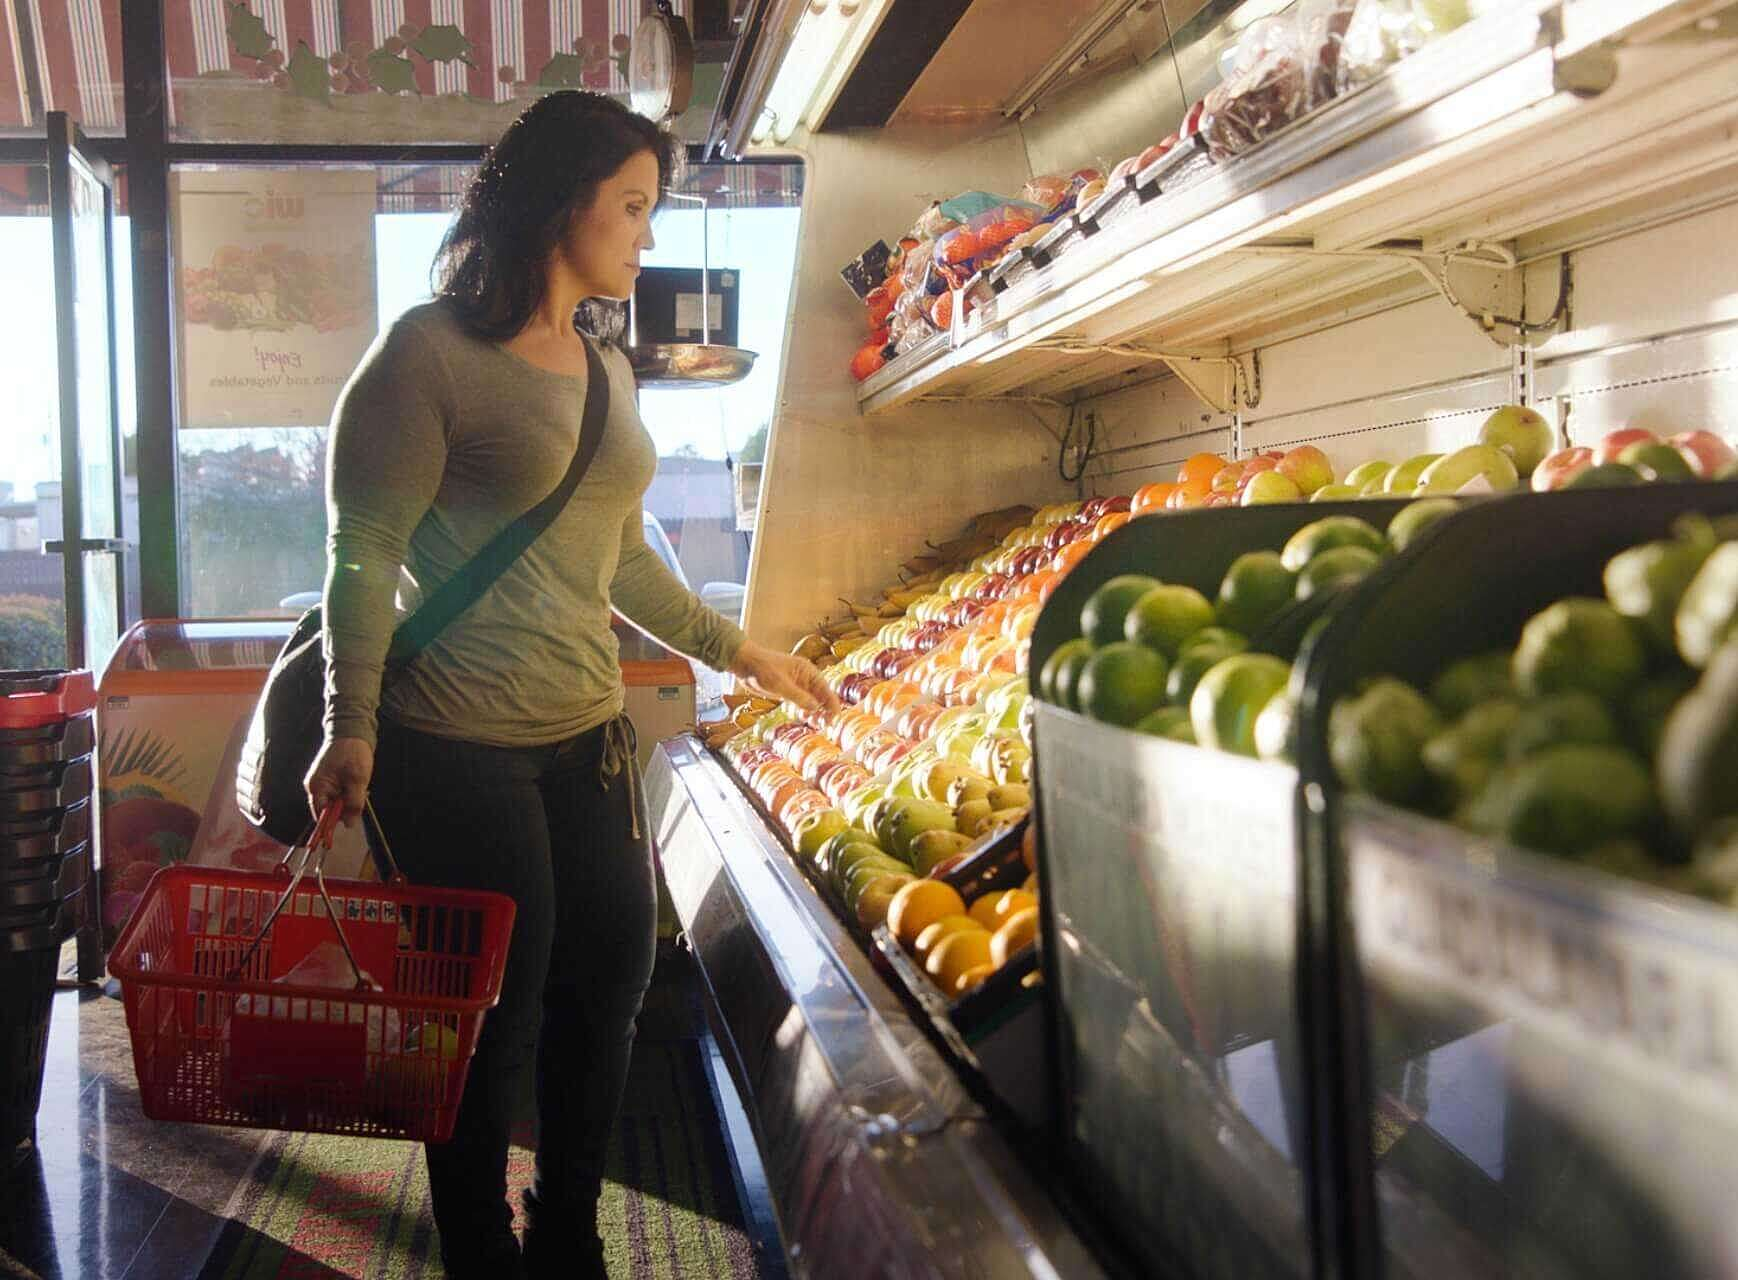 Araceli in the produce section of a grocery store.